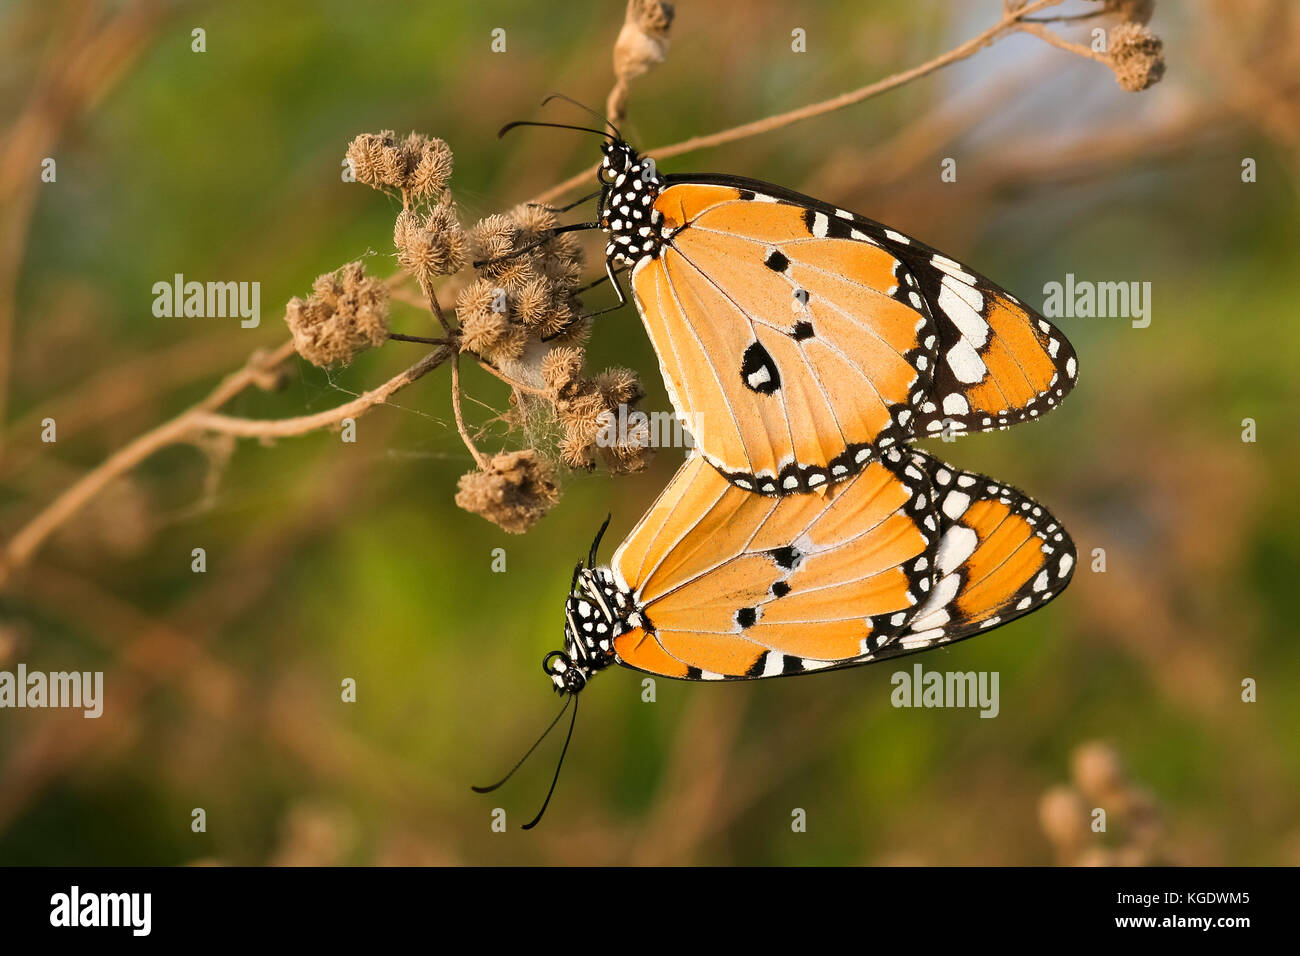 Plain Tiger (Danaus chrysippus) AKA African Monarch Butterfly shot in Israel, Summer August - Stock Image